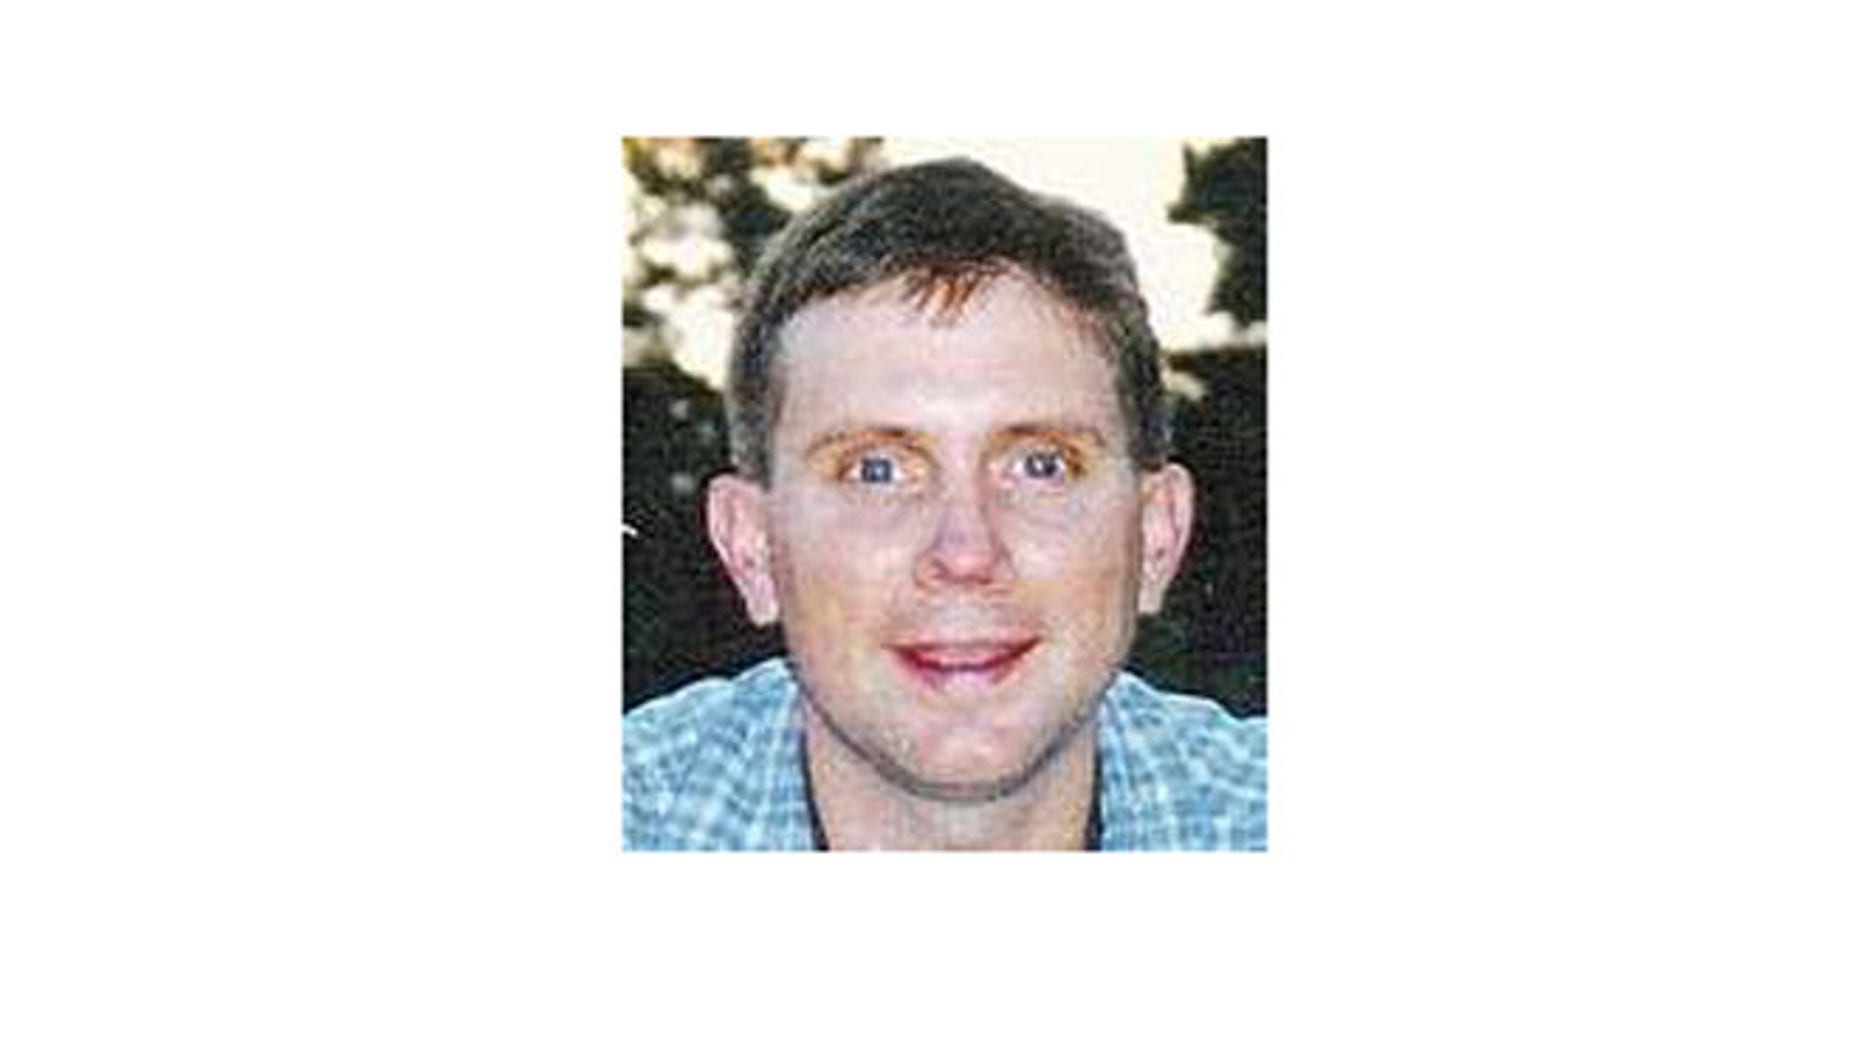 This photo, provided by the Tallahassee Democrat, shows 31-year-old Mike Williams, who vanished without a trace on Dec. 16, 2000.